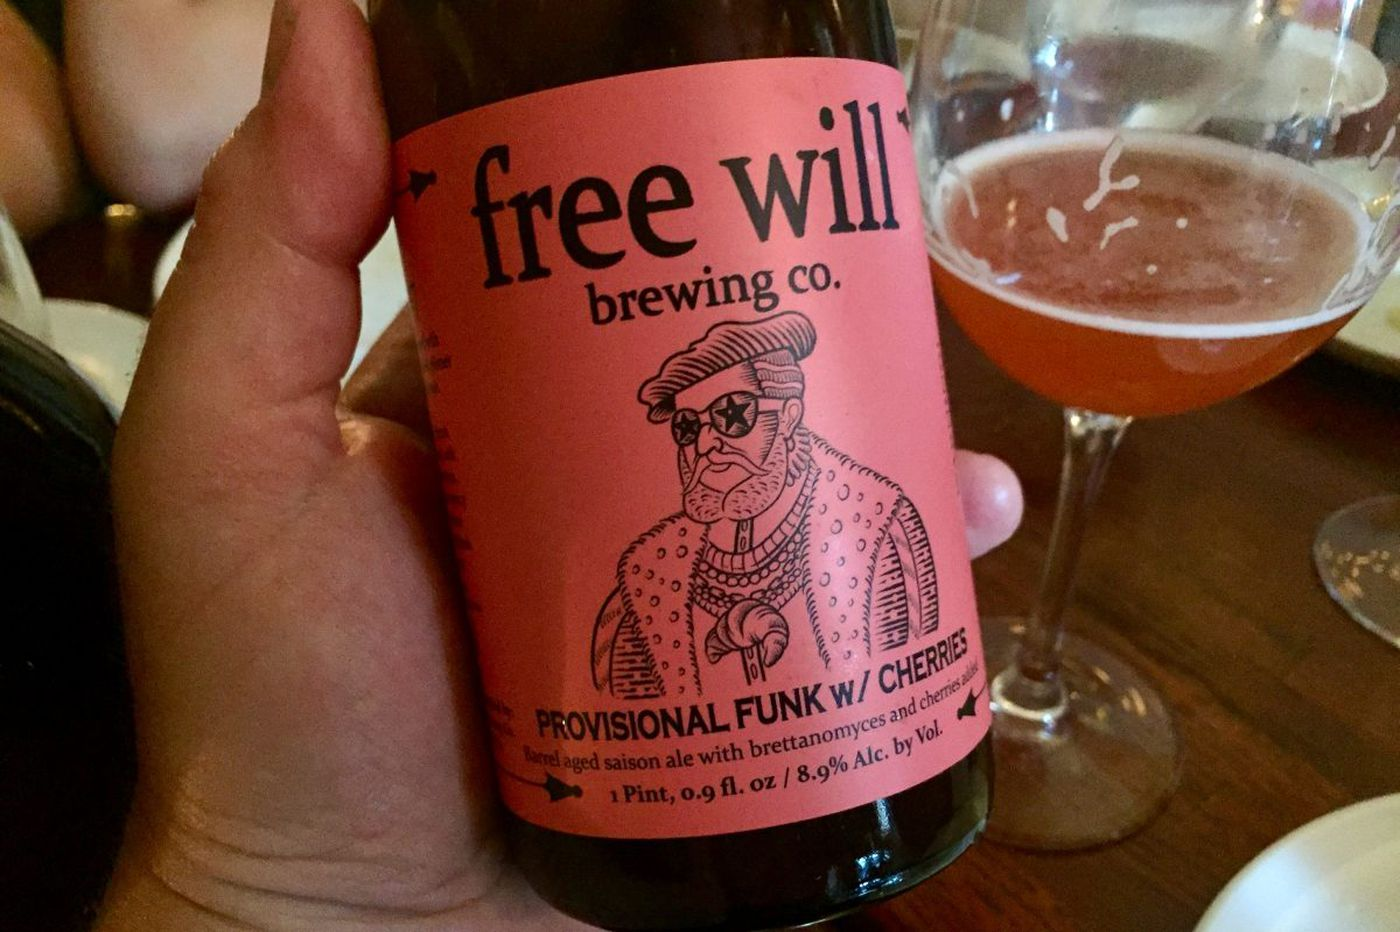 It's the season for saison with fruity funk at Free Will Brewing Co.